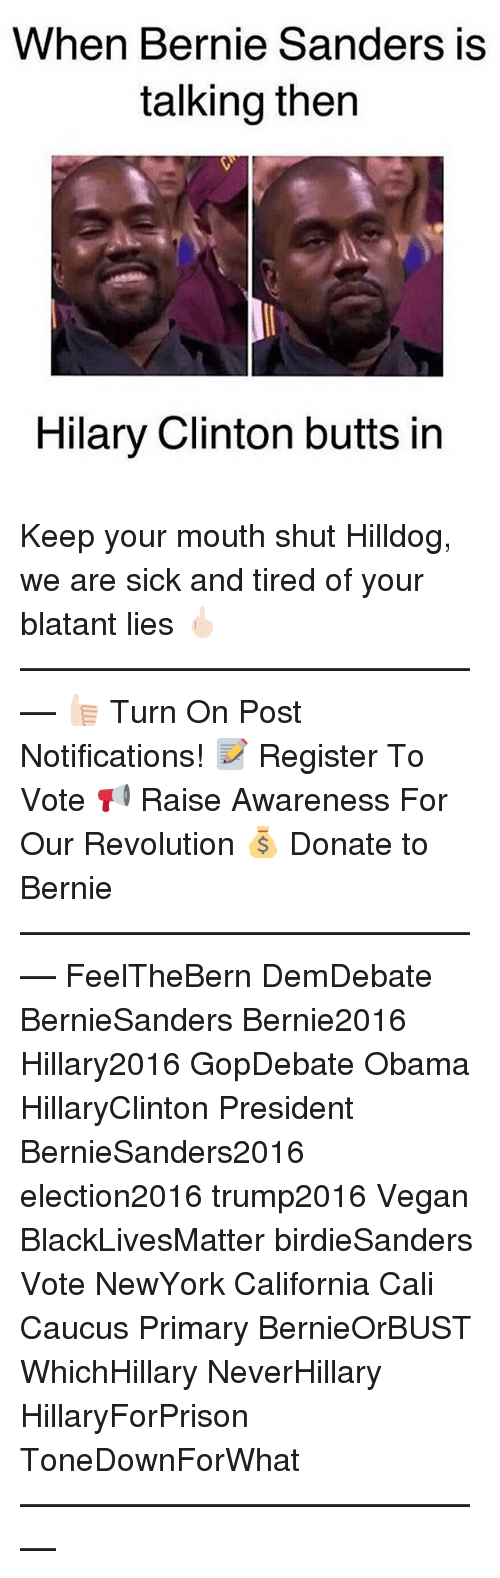 Bernie Sanders, Black Lives Matter, and Memes: When Bernie Sanders is  talking then  Hilary Clinton butts in Keep your mouth shut Hilldog, we are sick and tired of your blatant lies 🖕🏻 ––––––––––––––––––––––––––– 👍🏻 Turn On Post Notifications! 📝 Register To Vote 📢 Raise Awareness For Our Revolution 💰 Donate to Bernie ––––––––––––––––––––––––––– FeelTheBern DemDebate BernieSanders Bernie2016 Hillary2016 GopDebate Obama HillaryClinton President BernieSanders2016 election2016 trump2016 Vegan BlackLivesMatter birdieSanders Vote NewYork California Cali Caucus Primary BernieOrBUST WhichHillary NeverHillary HillaryForPrison ToneDownForWhat –––––––––––––––––––––––––––